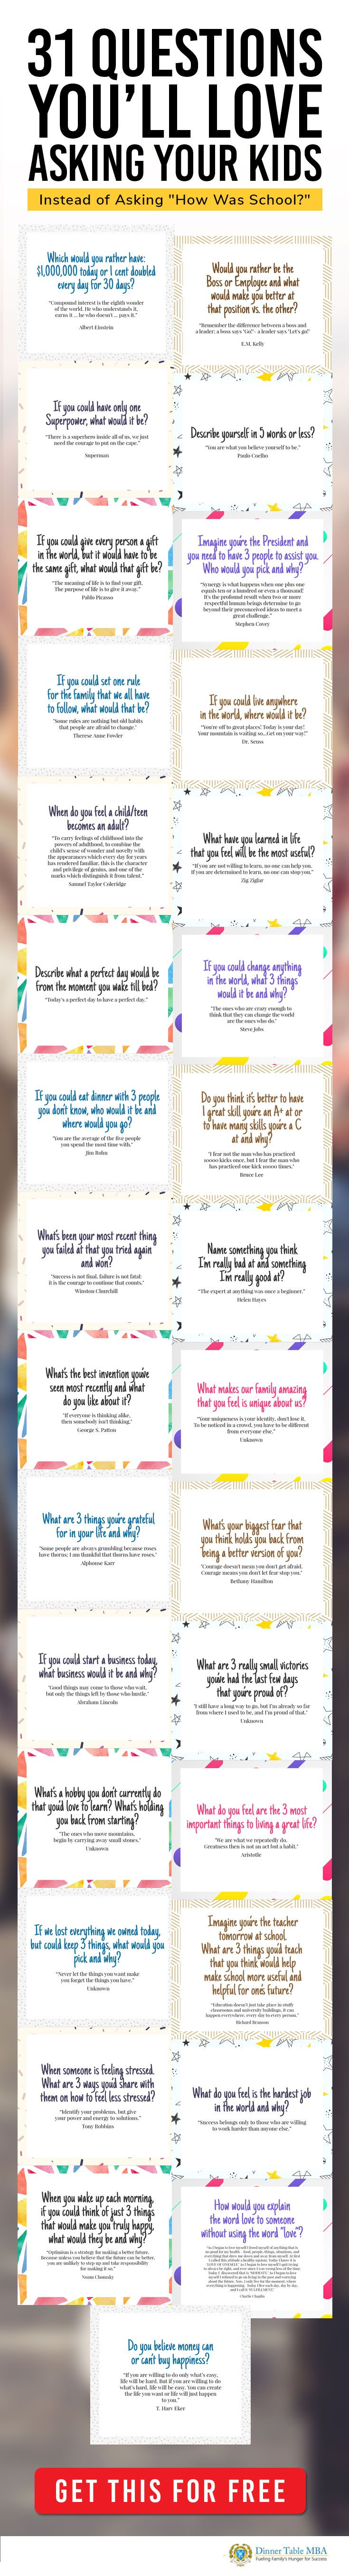 Here's 31 questions for Kids that every parent will love. Included are talking points and awesome stories for each question that you're kid will love.